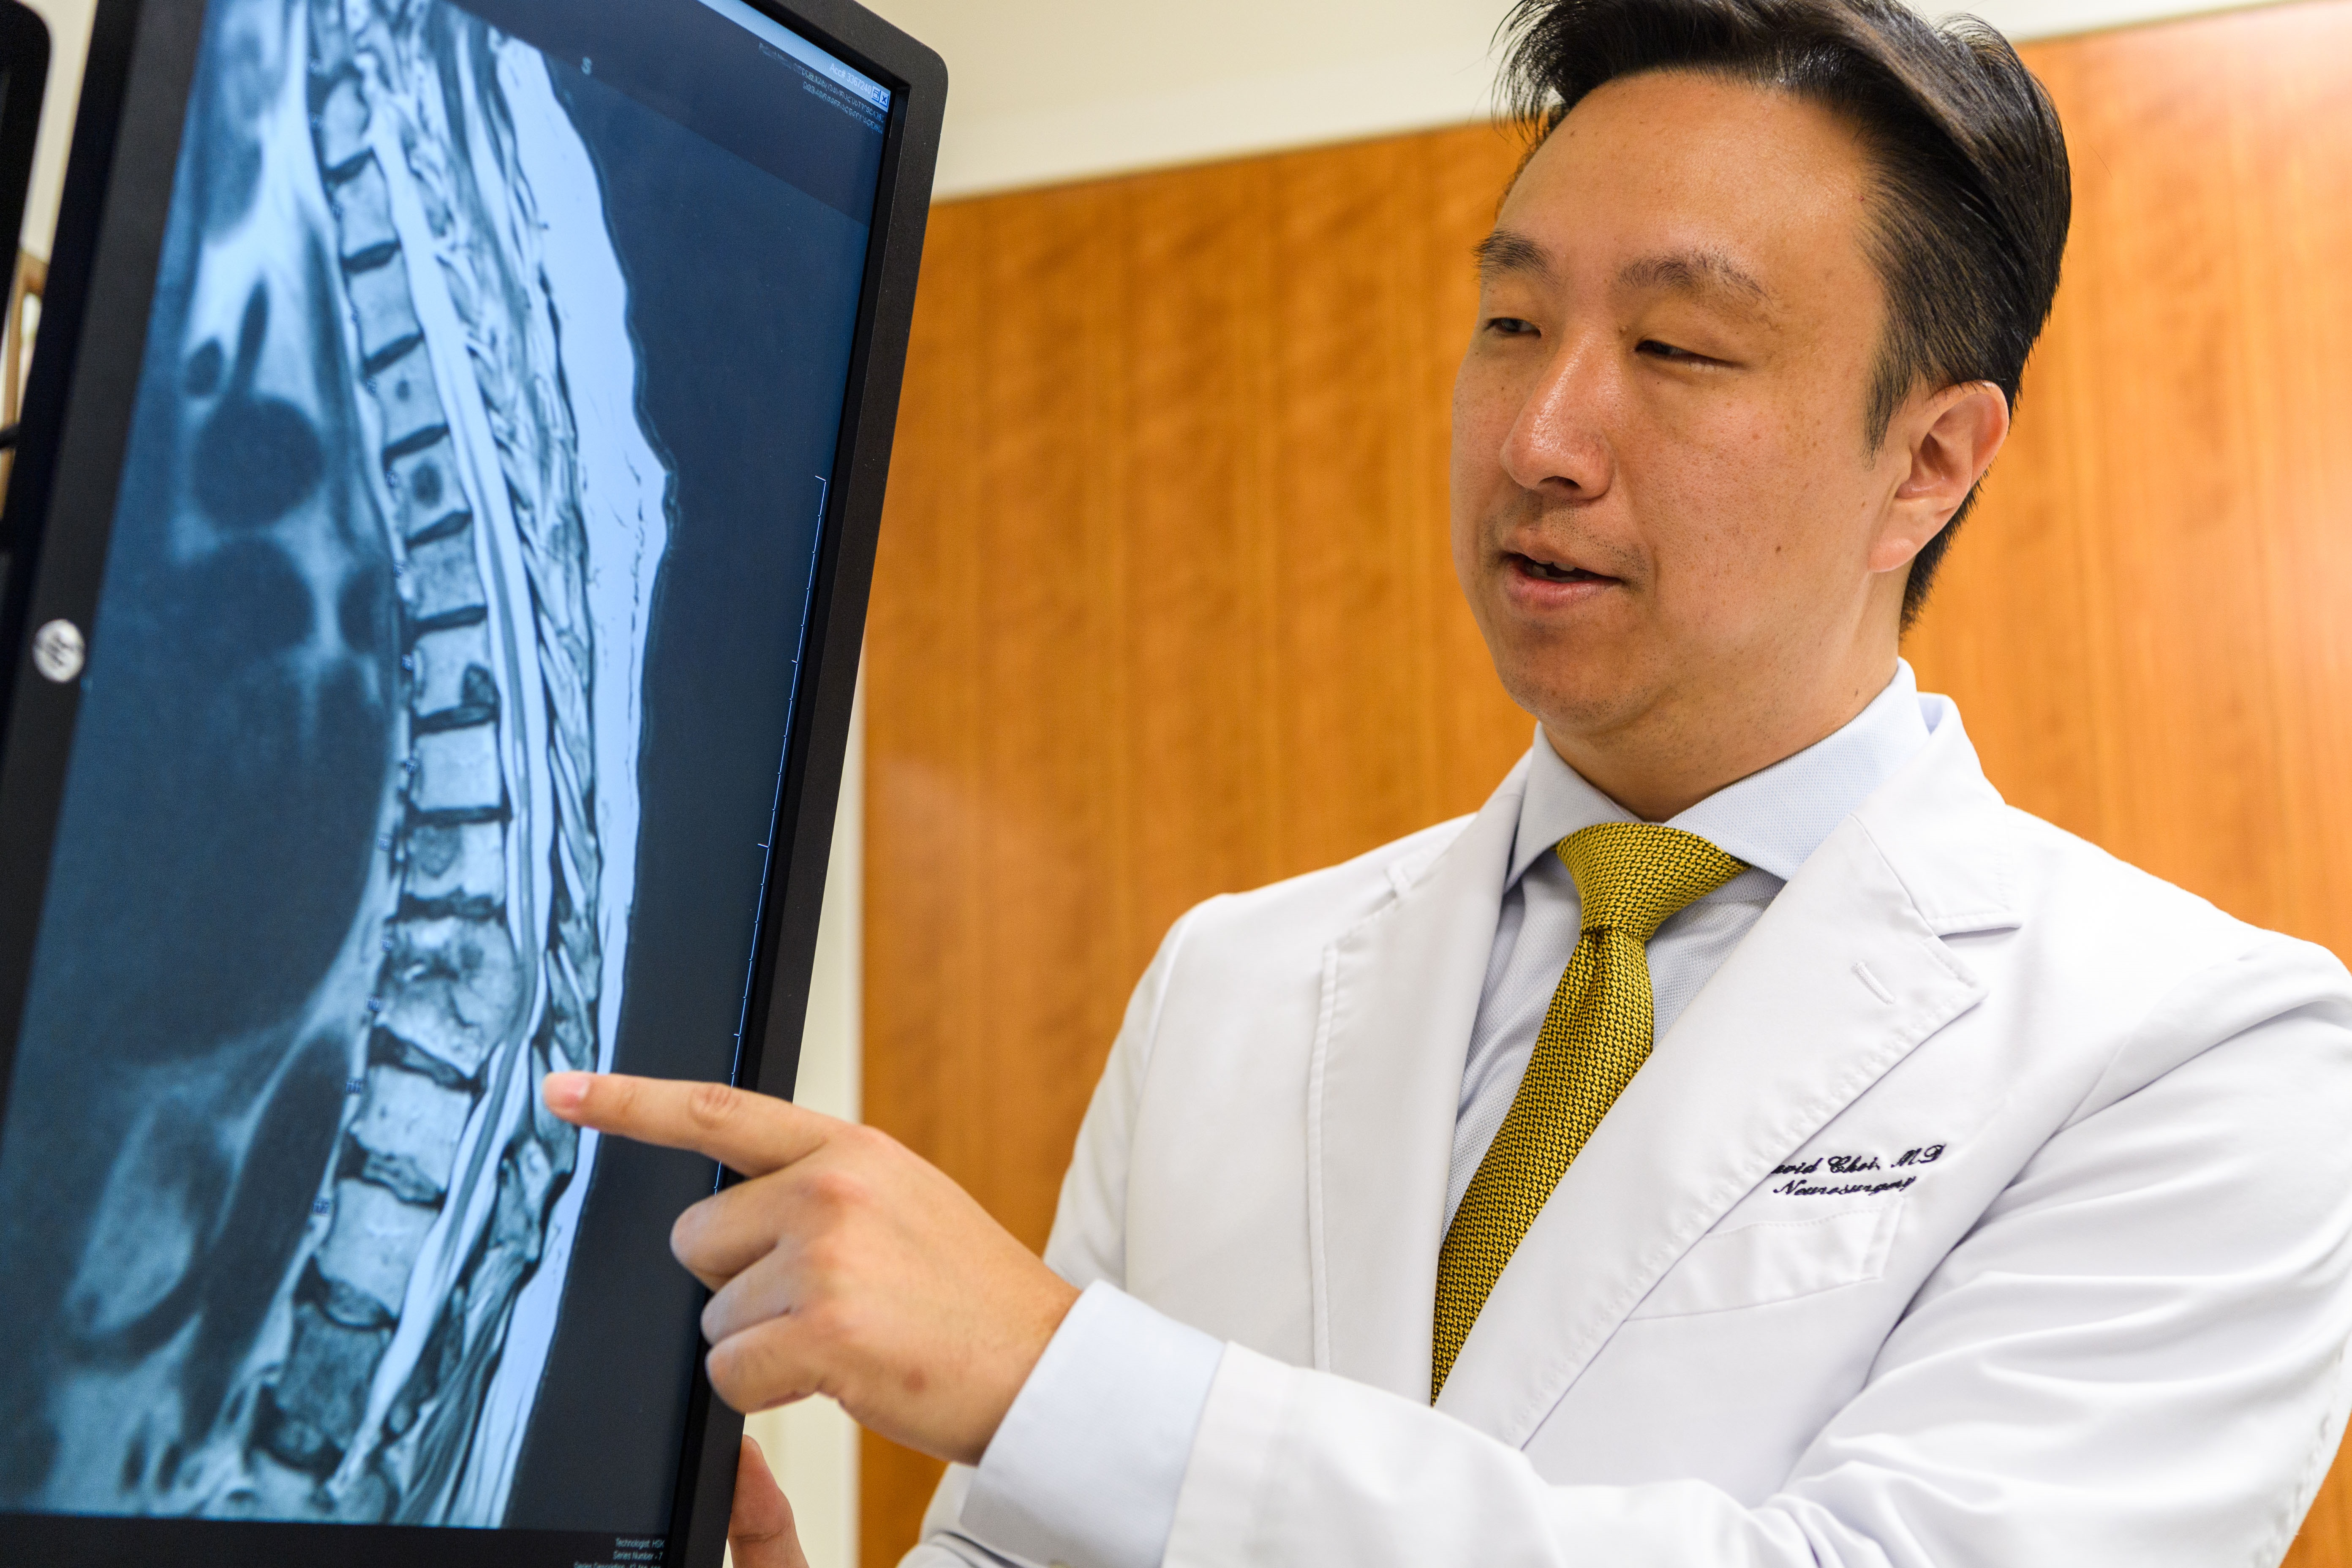 Dr. David Choi is the new spinal oncology surgeon at UConn Health (Peter Morenus/UConn Photo).